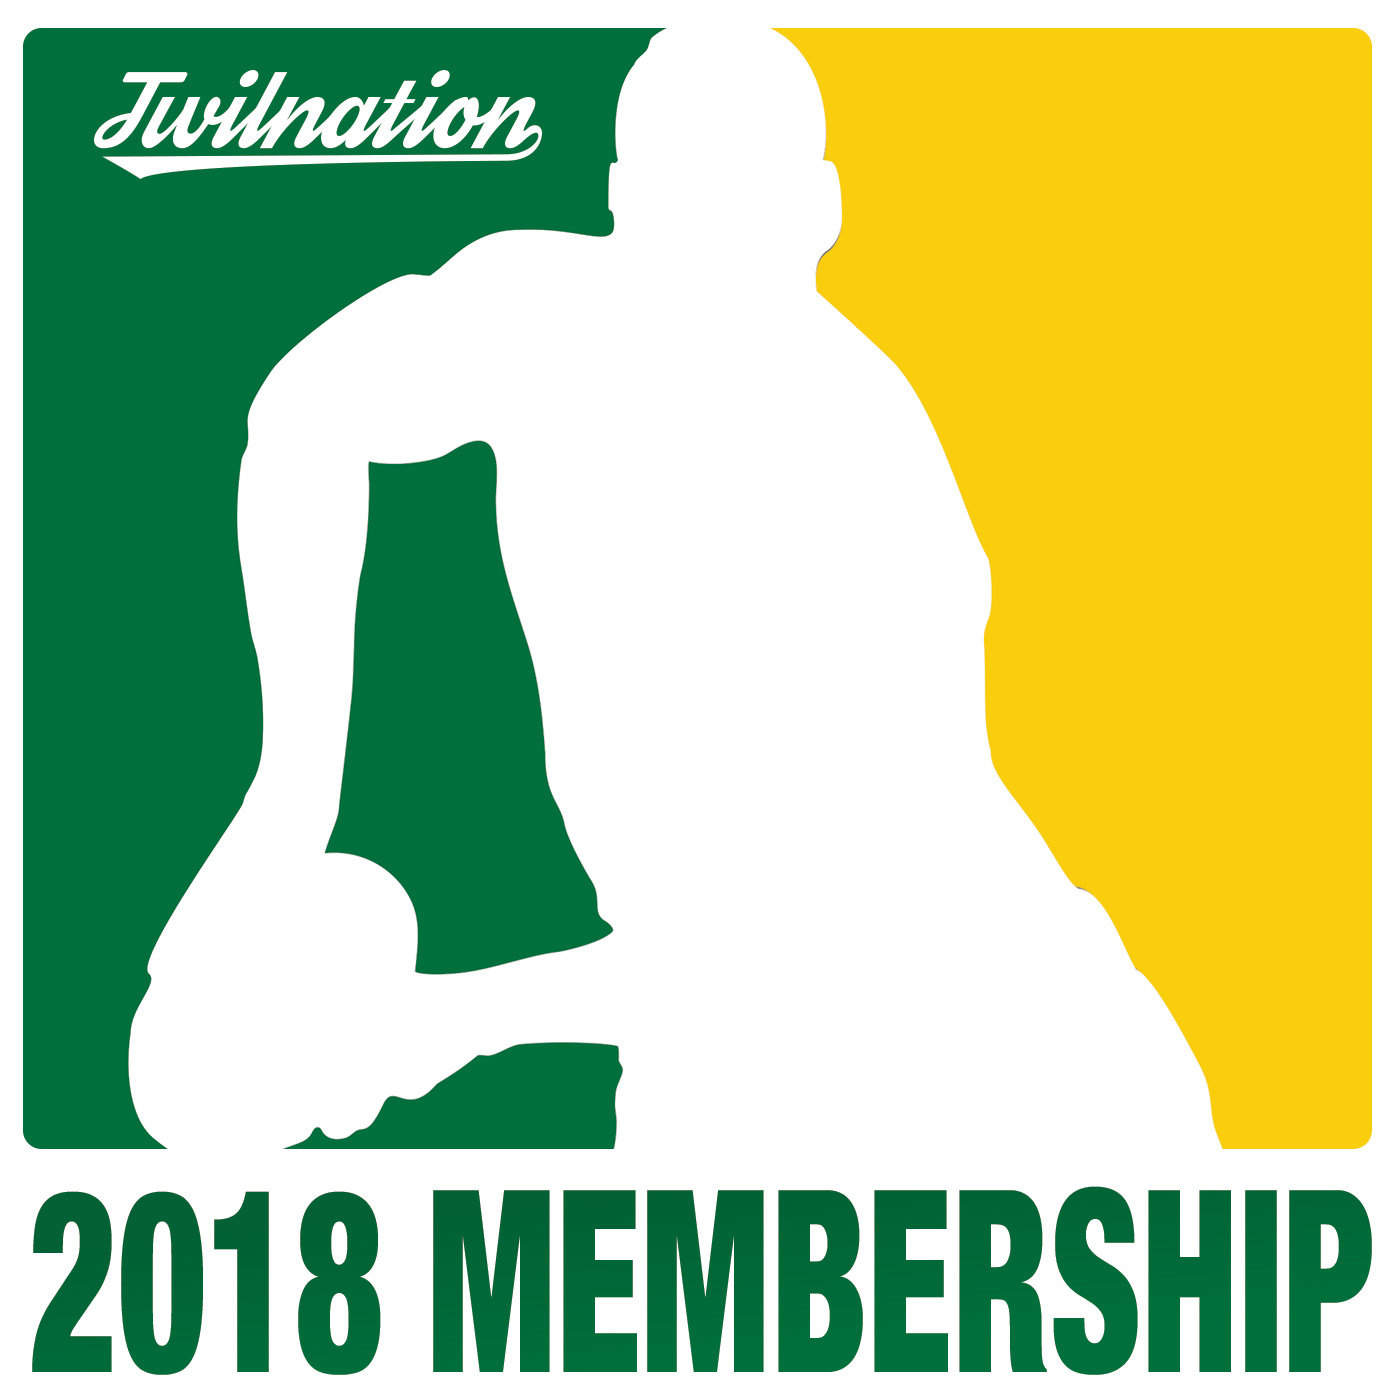 TWILNation 2018 Membership TWIL-2018-0001